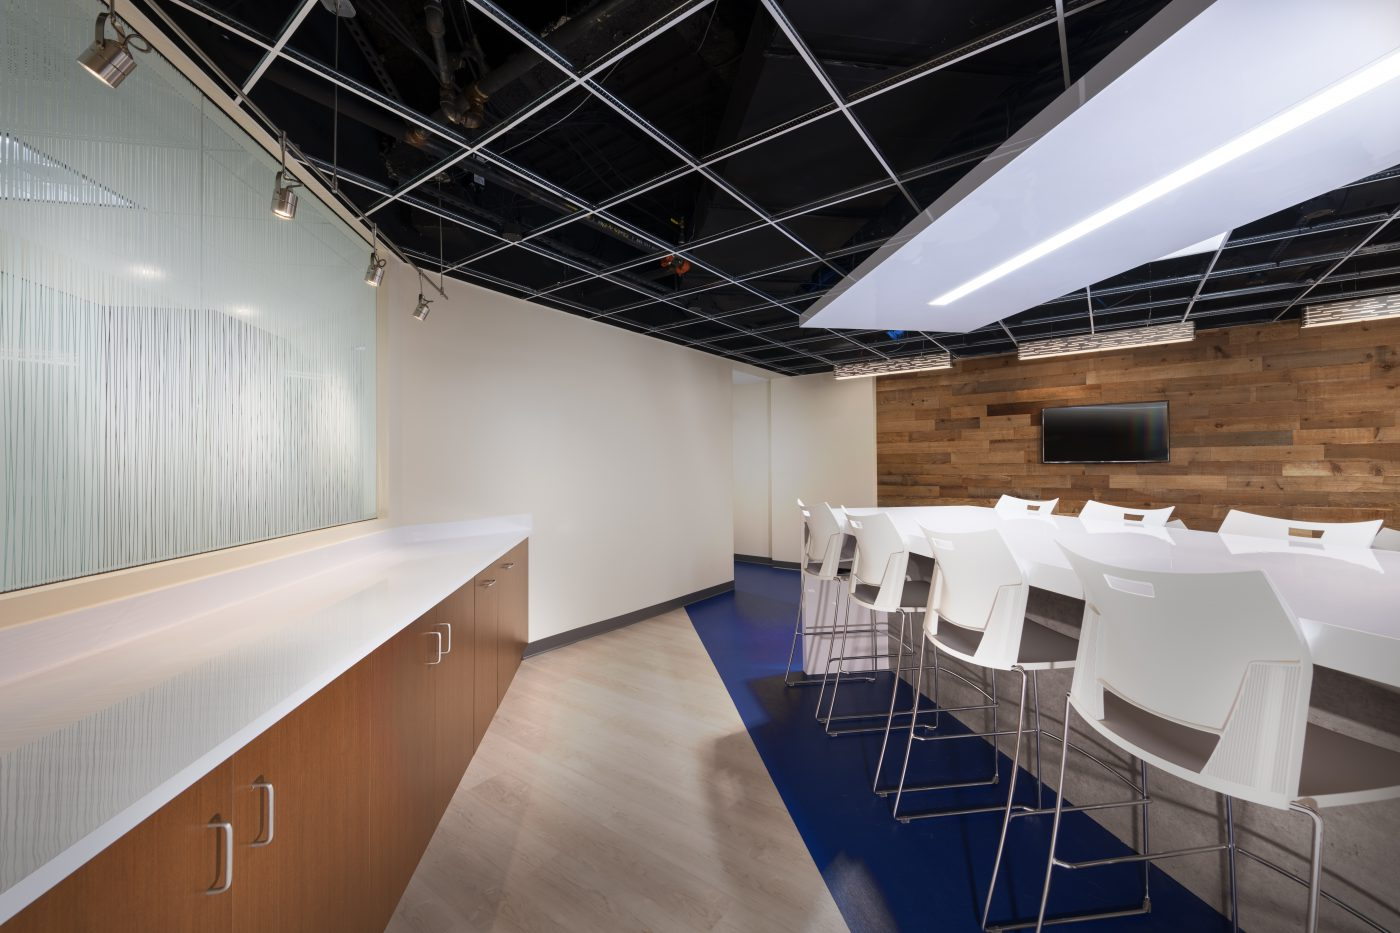 100 Lakeforest Blvd Cafe And Breakout Space Bates Architects Bates Architects